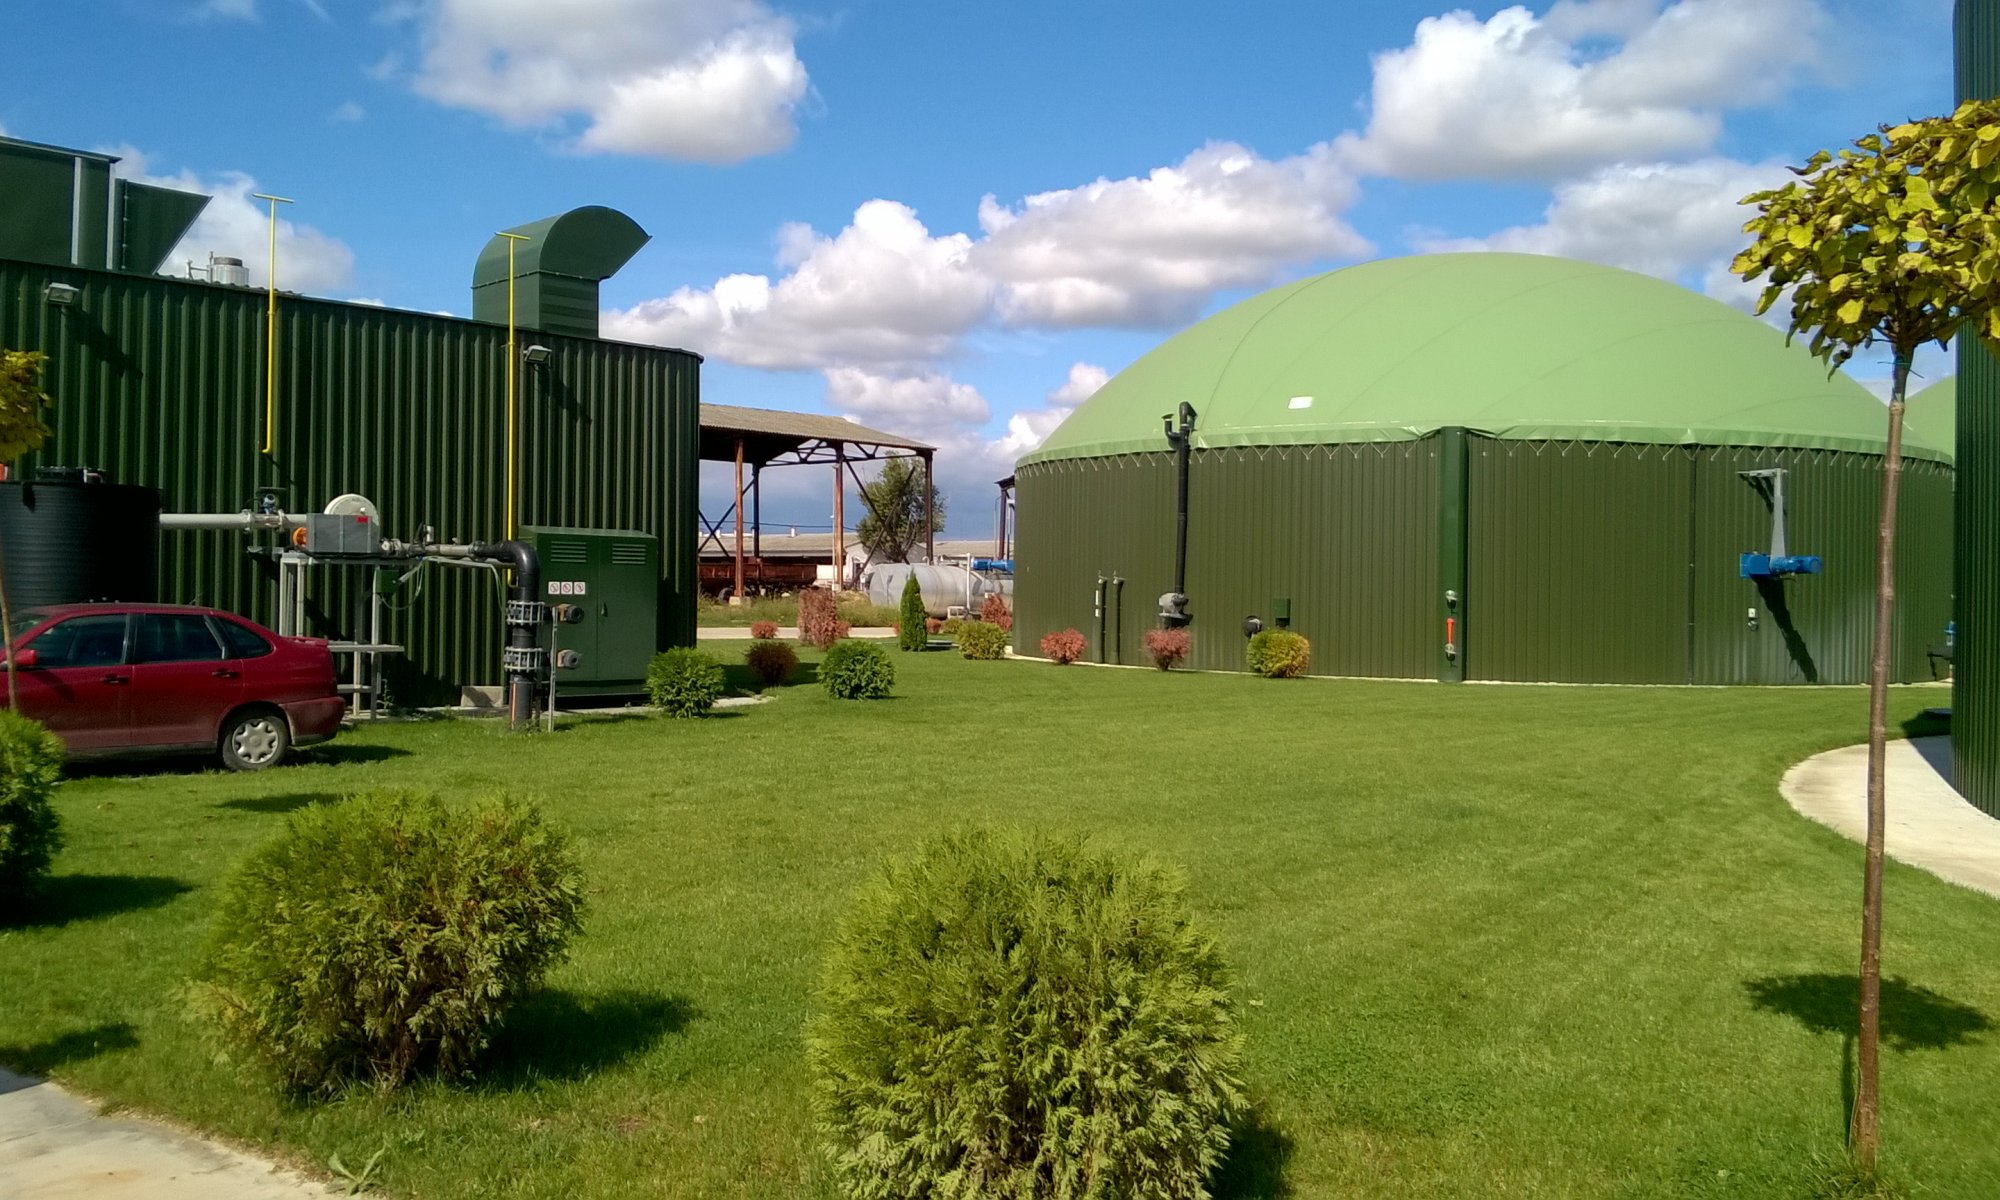 Feasibility study for 2 MWe biogas plant on corn silage